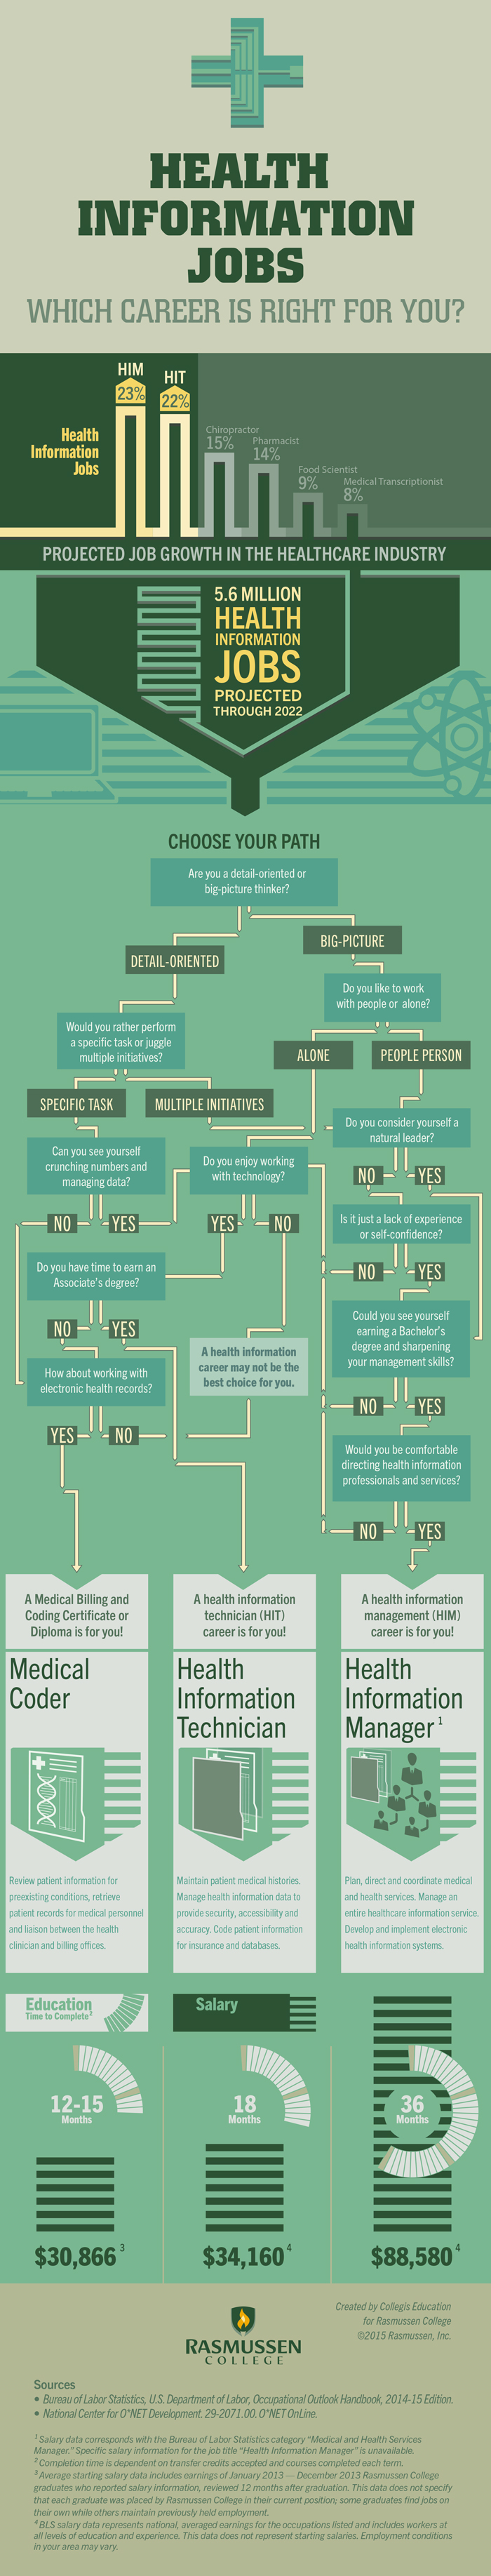 health information jobs which career is right for you infographic